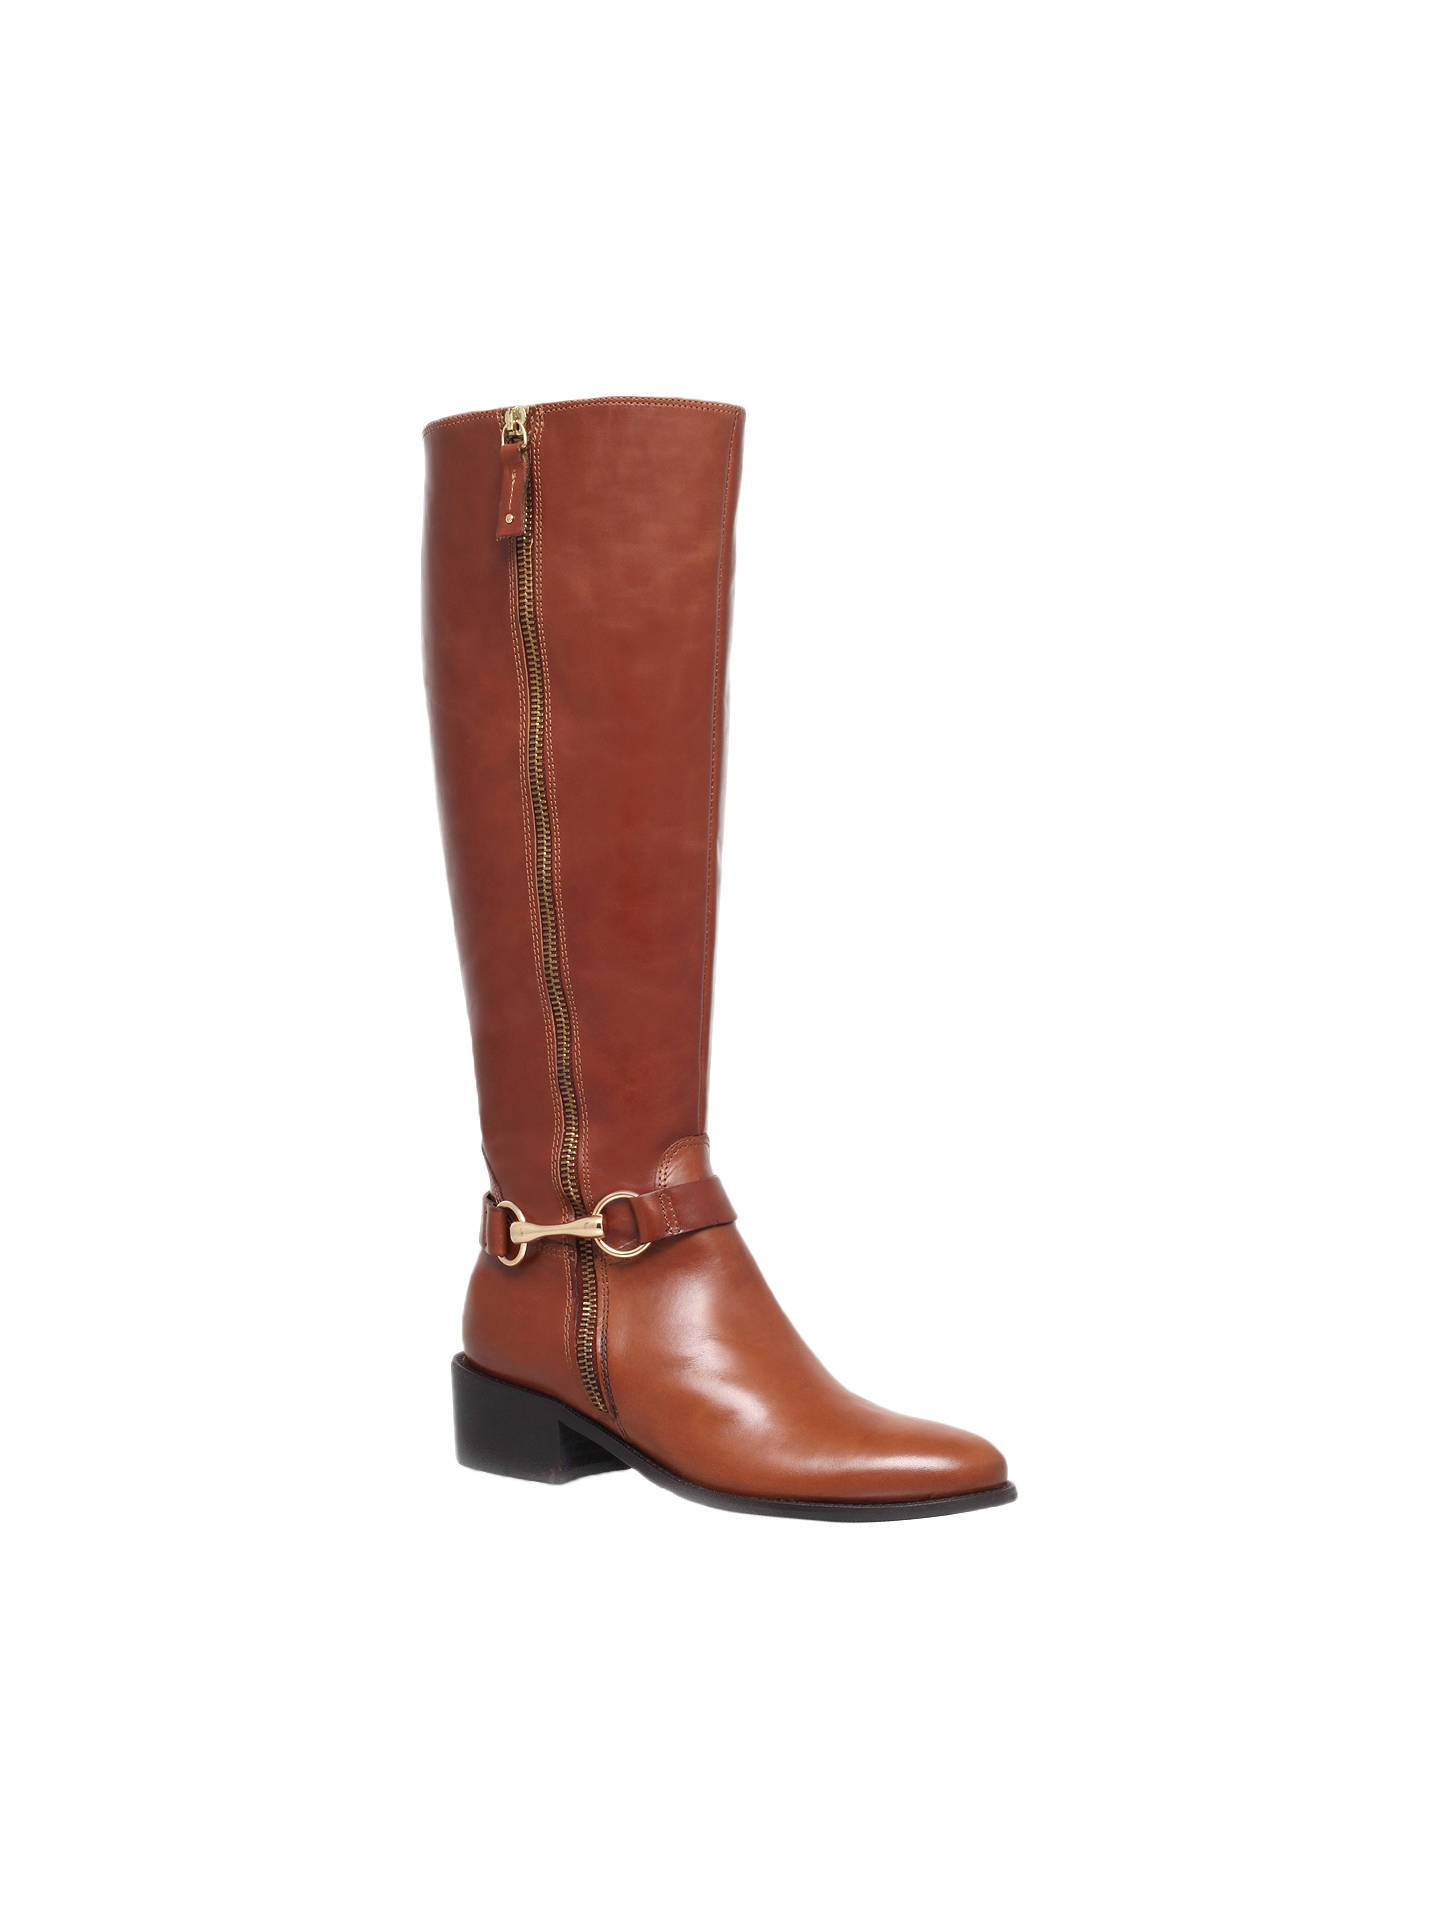 42e8d5f9cce5 Buy Carvela Waffle Leather Horsebit Trim Knee Boots, Tan, 3 Online at  johnlewis.